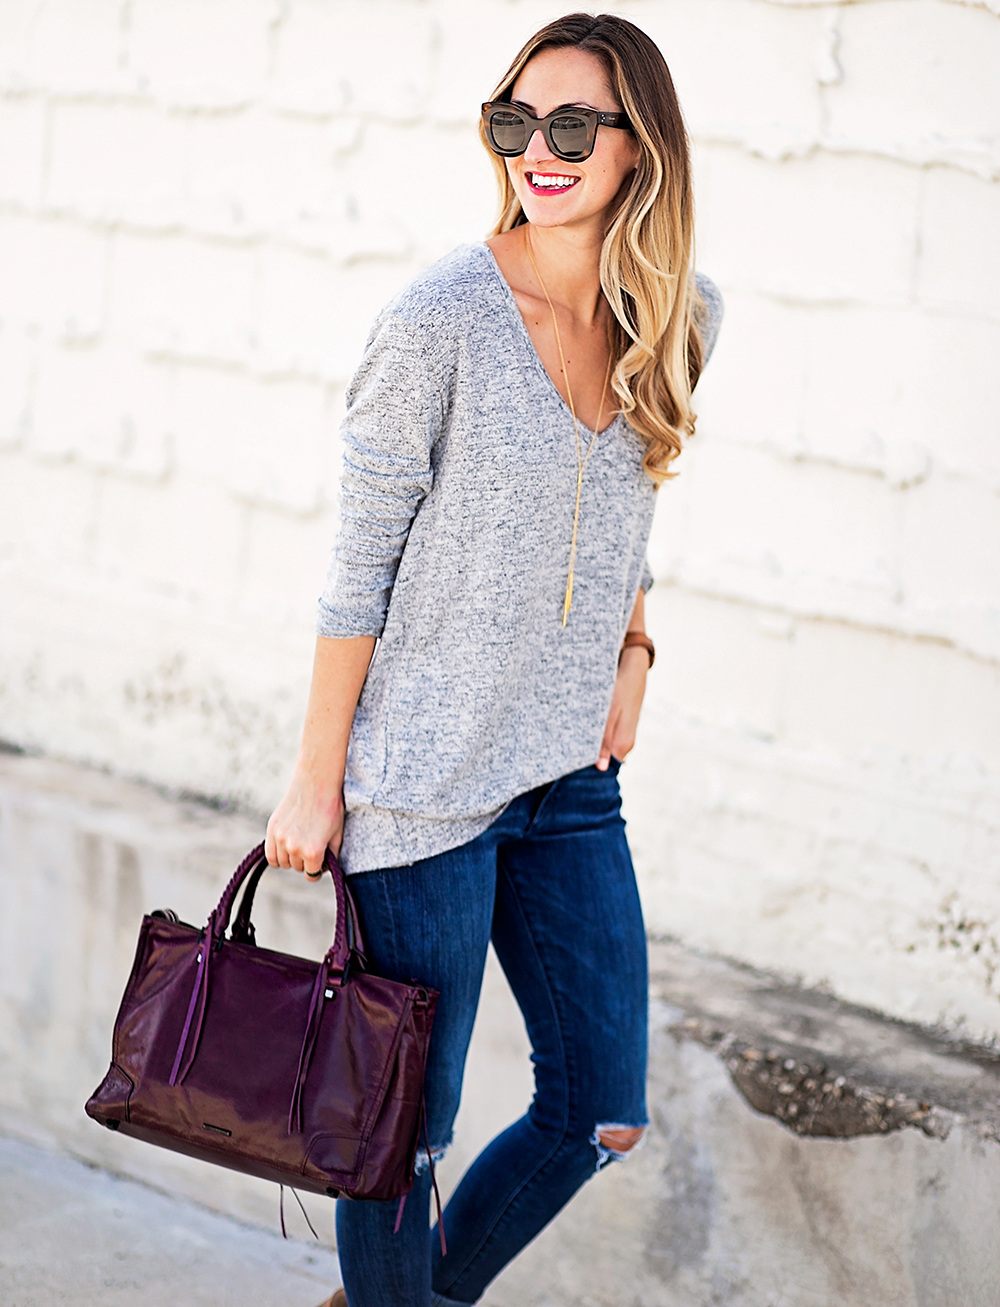 livvyland-blog-olivia-watson-nordstrom-fall-outfit-grey-sweater-booties-madewell-plaid-poncho-rebecca-minkoff-regan-satchel-burgundy-oxblood-11